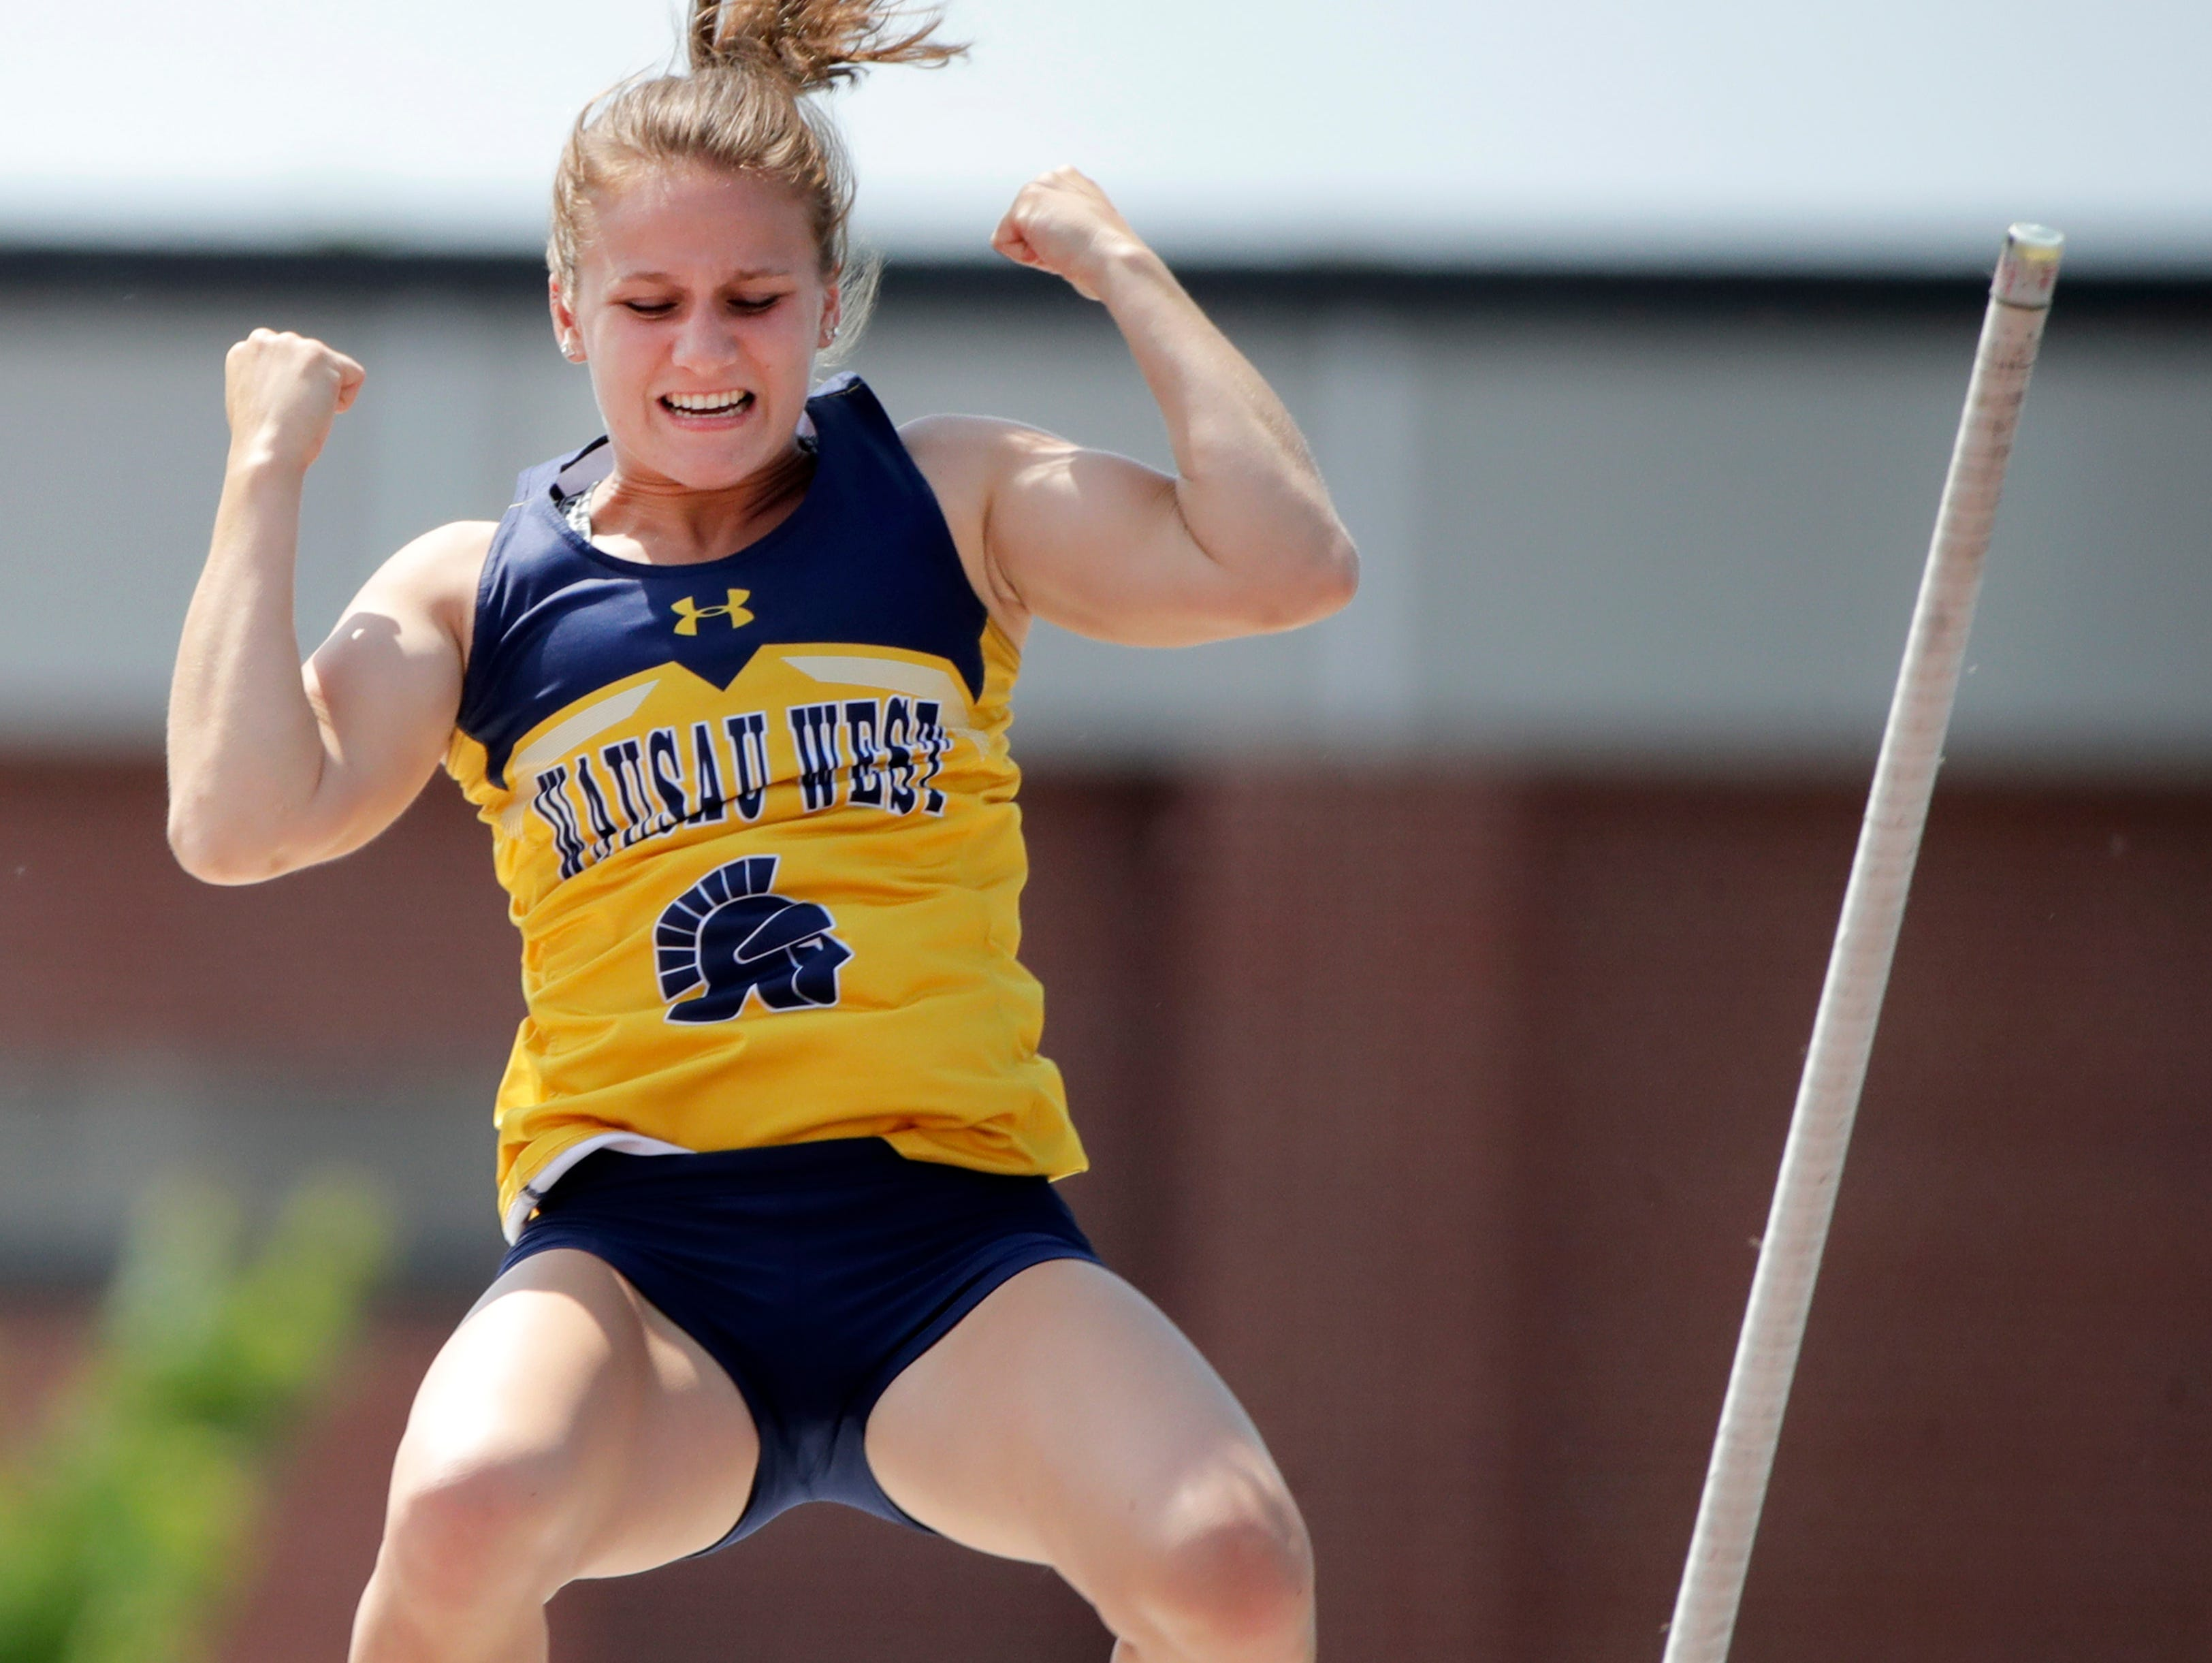 Wausau West's Olivia Bright celebrates in the air after clearing the bar in the Division 1 pole vault during the WIAA state track and field meet Friday, June 1, 2018, at Veterans Memorial Stadium in La Crosse, Wis. 